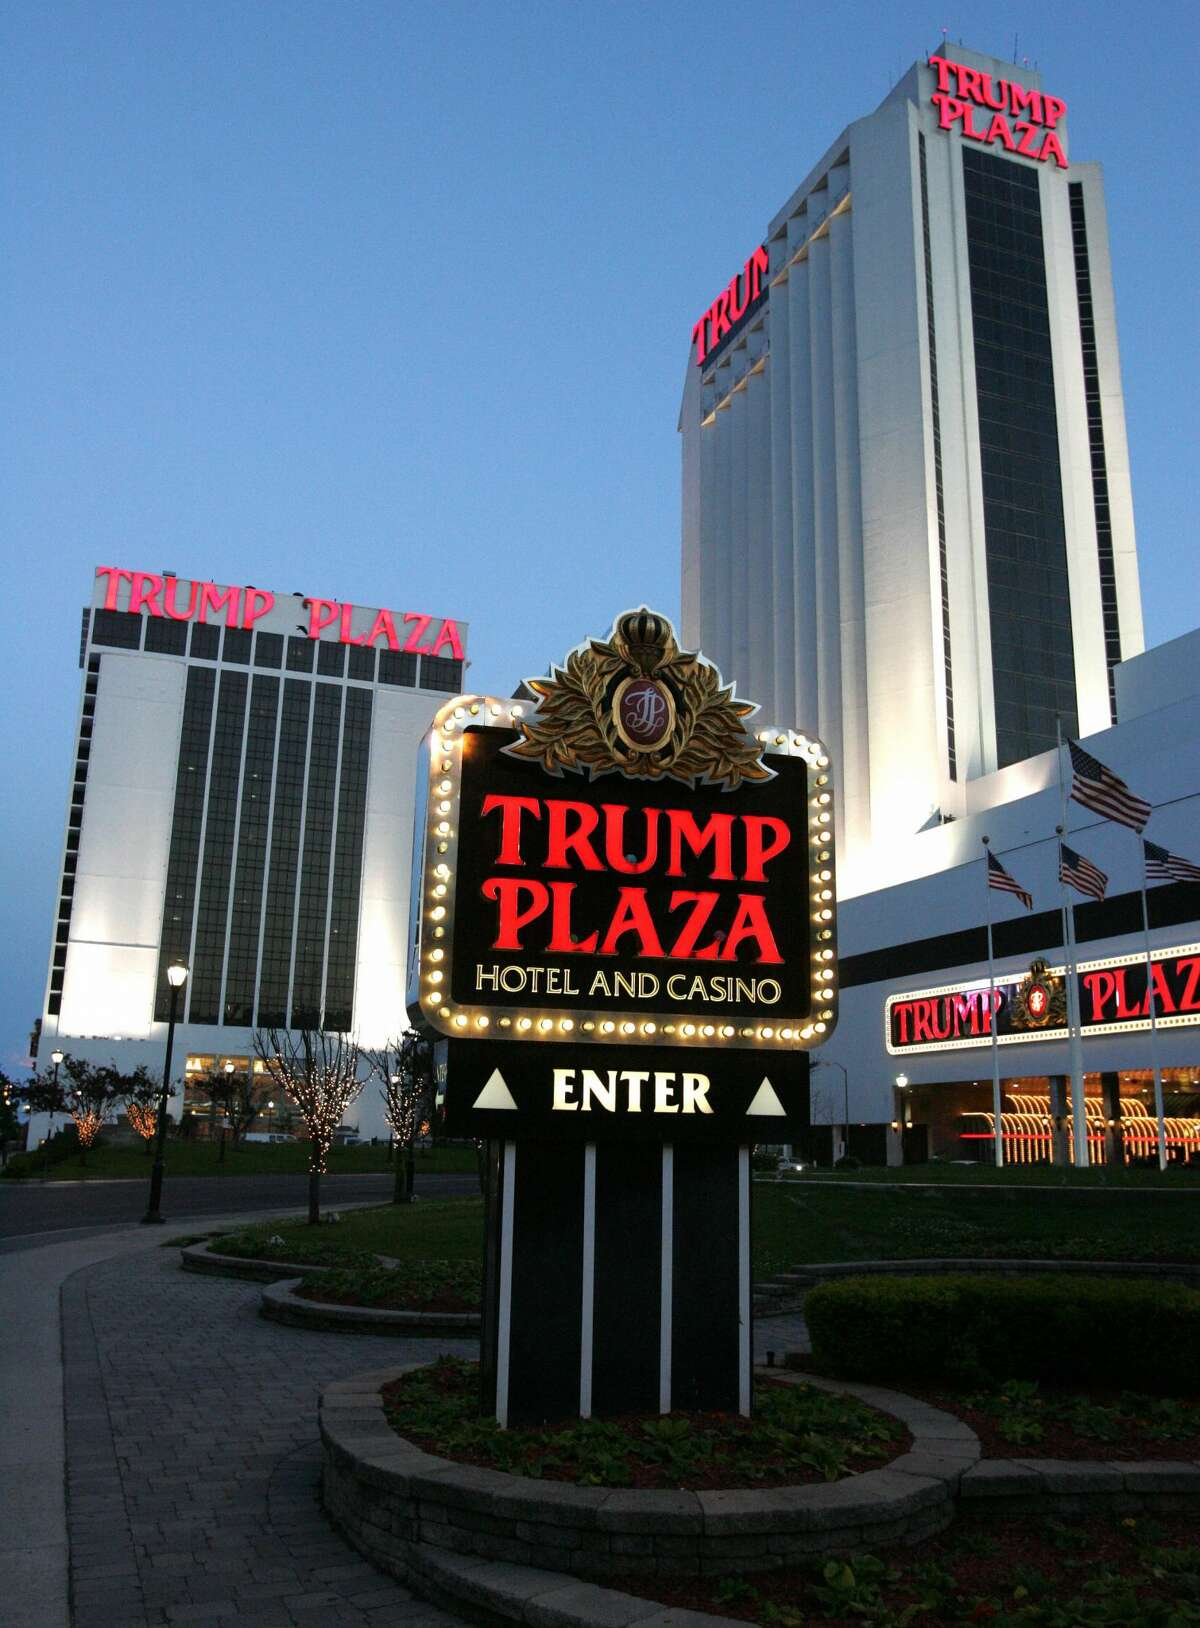 HostingWrestleMania Trump's history with the WWE, then the World Wrestling Federation, began in 1988 when his hotel and casino, Trump Plaza, hostedWrestleMania V.